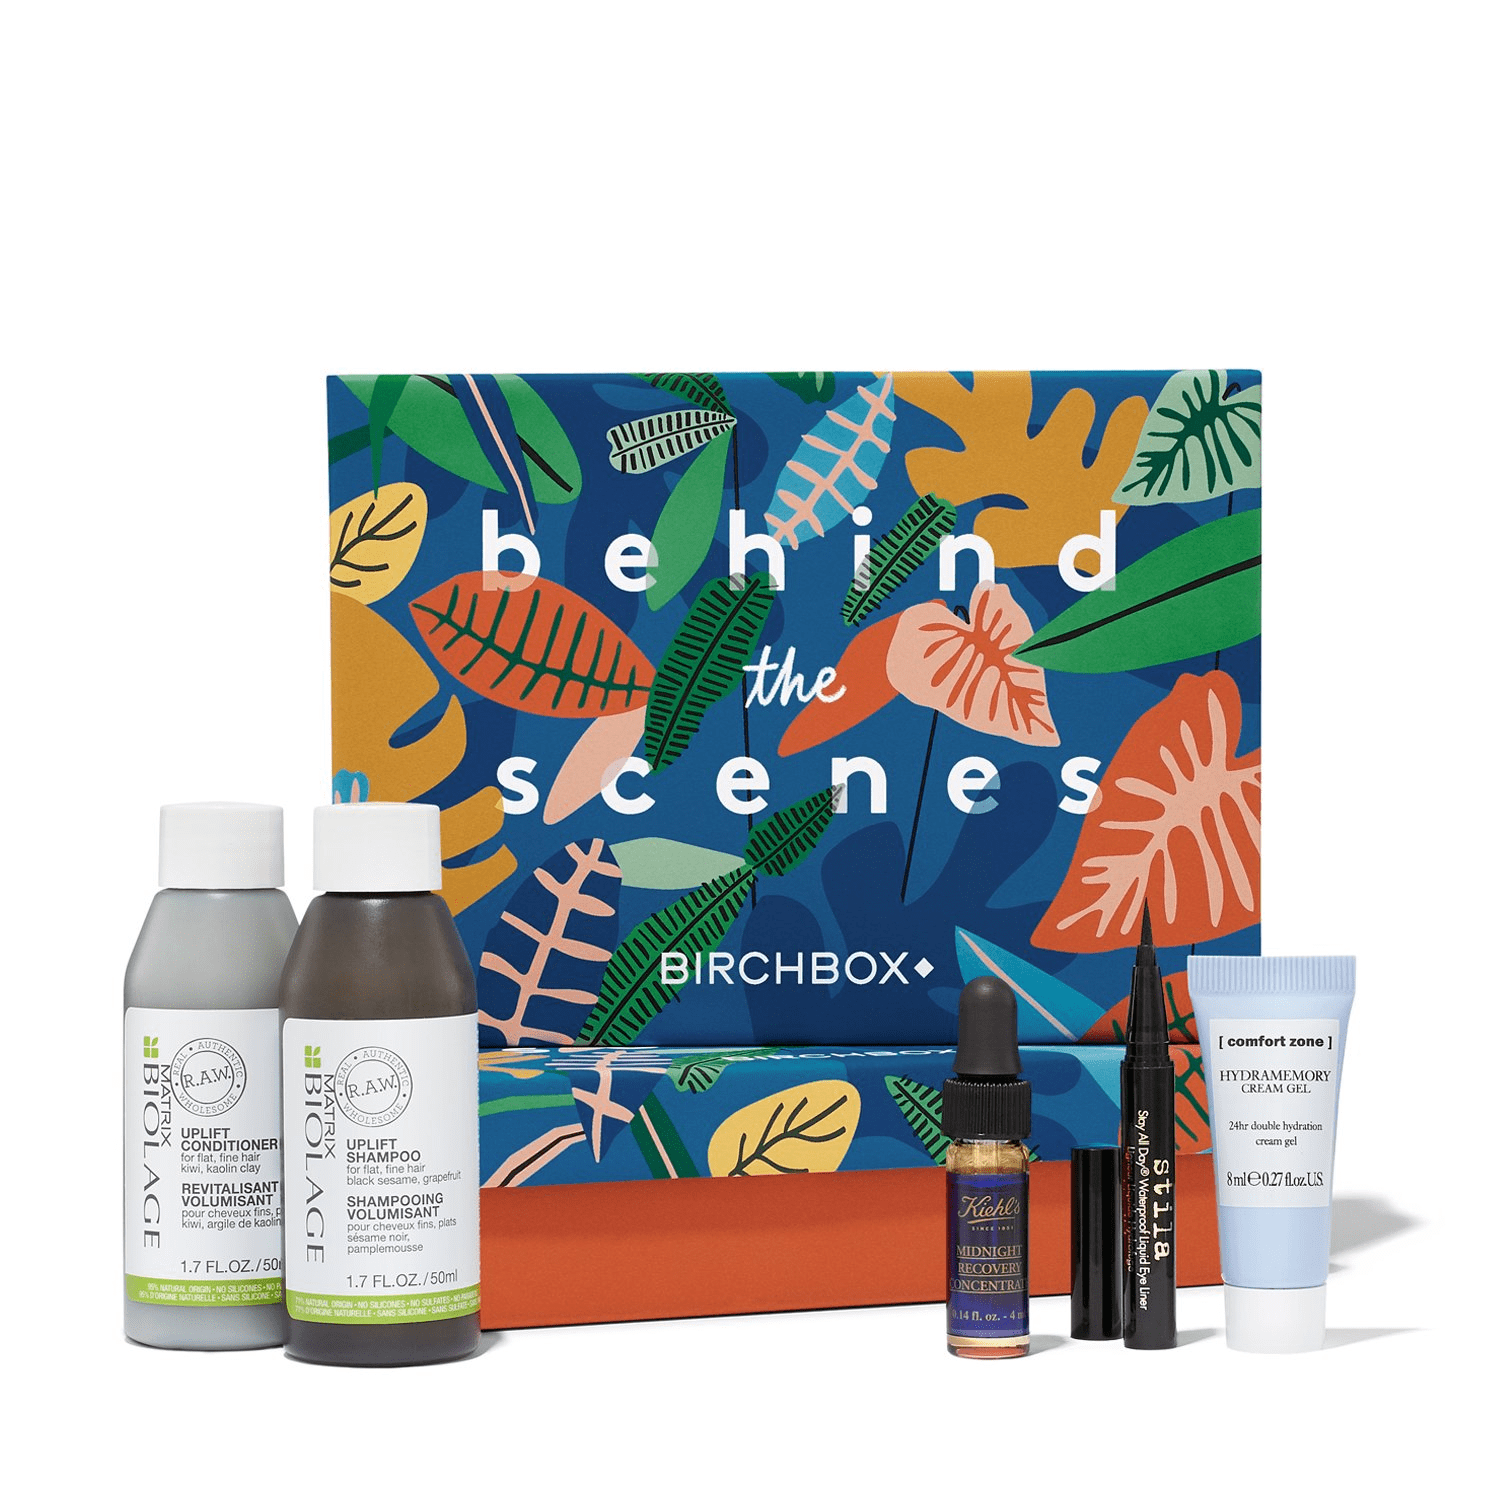 Birchbox October 2017 Behind the Scenes Curated Box Available Now in the Shop!